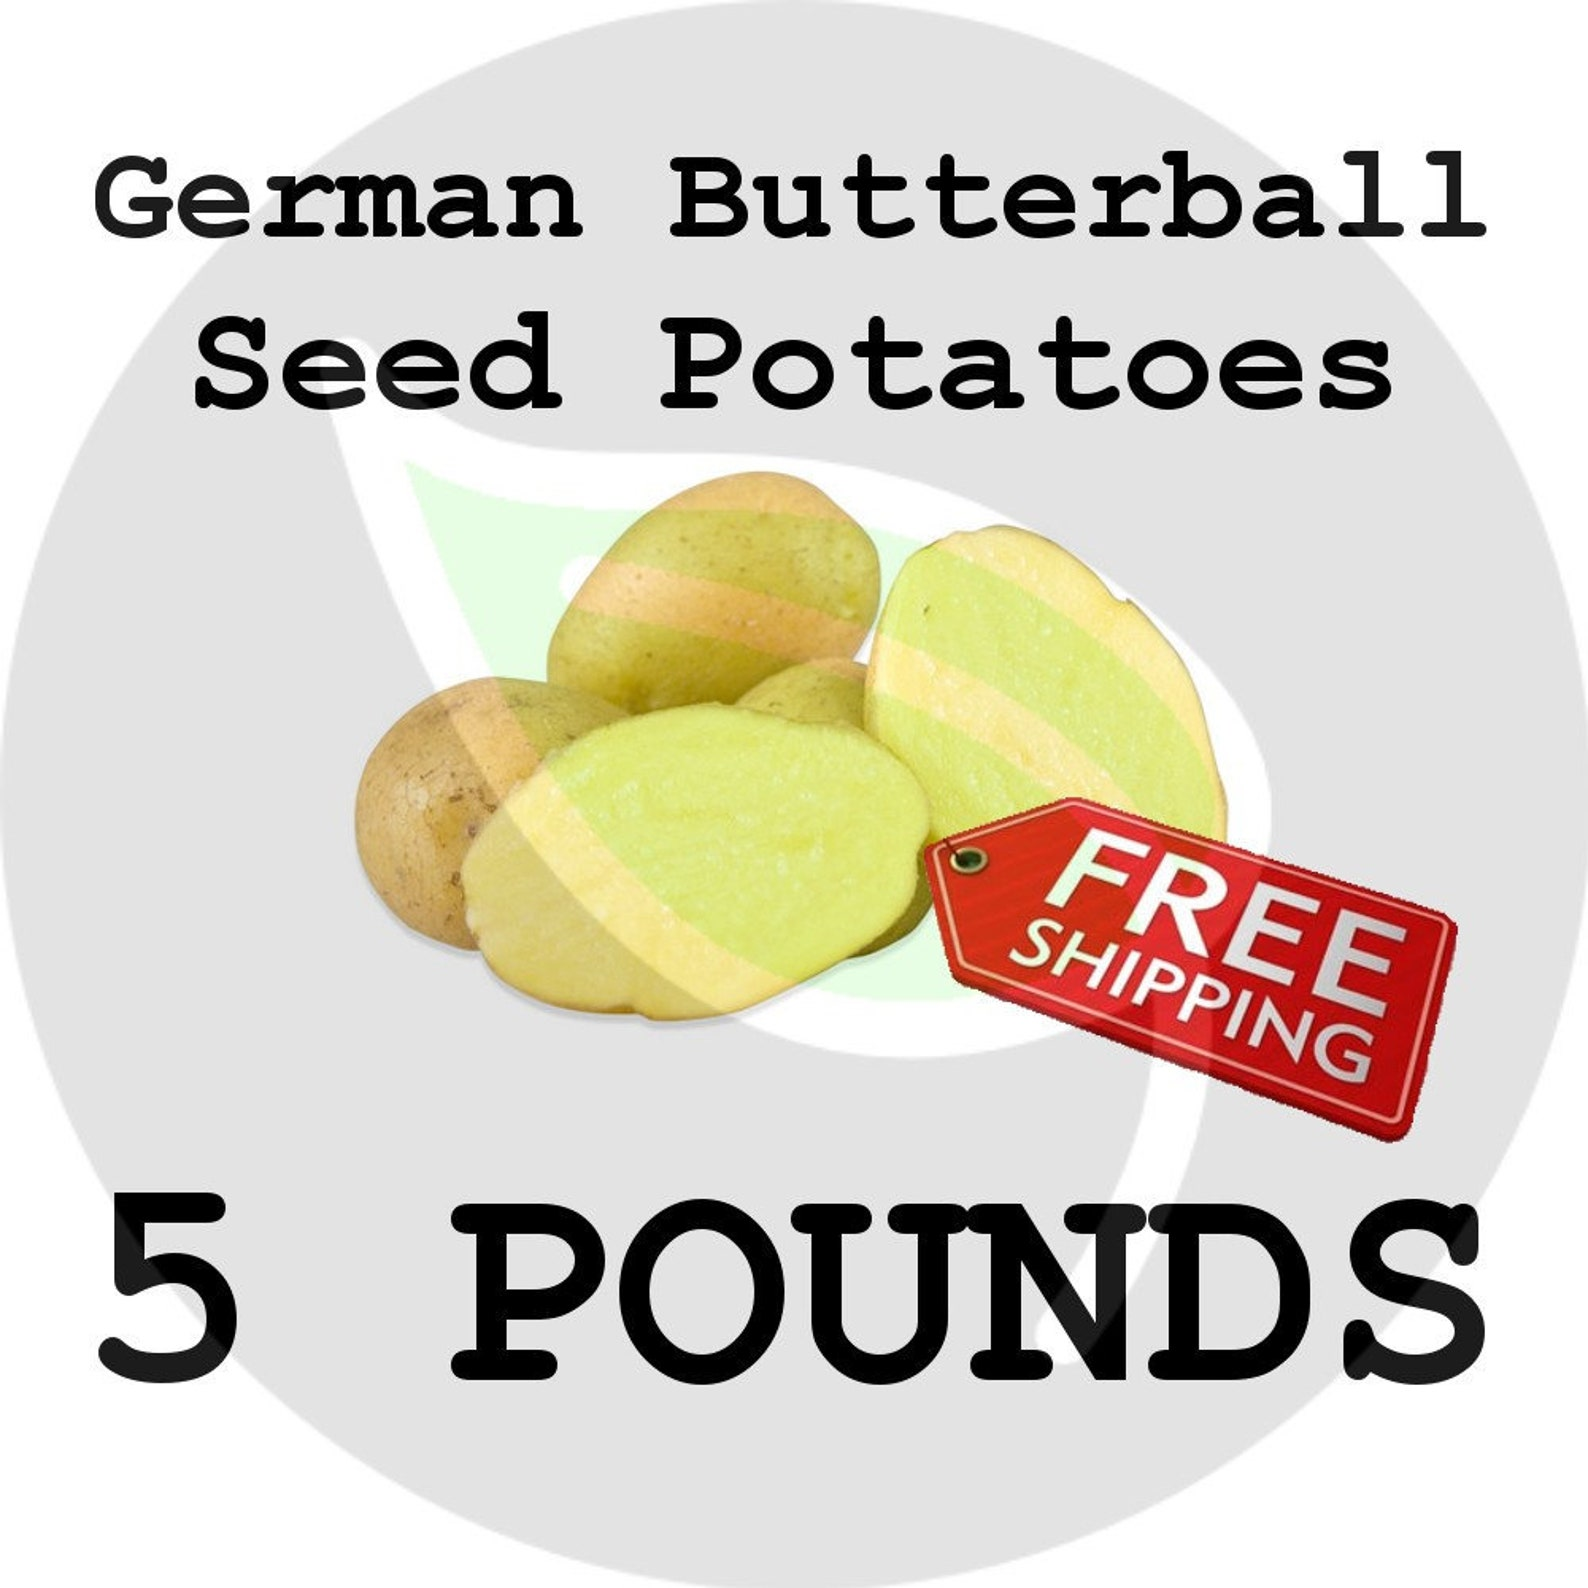 5-15 Lbs - German Butterball Seed Potatoes - 2019 Spring CERTIFIED SEED POTATO, Garden Planting! Non-Gmo Heirloom Tuber Spud